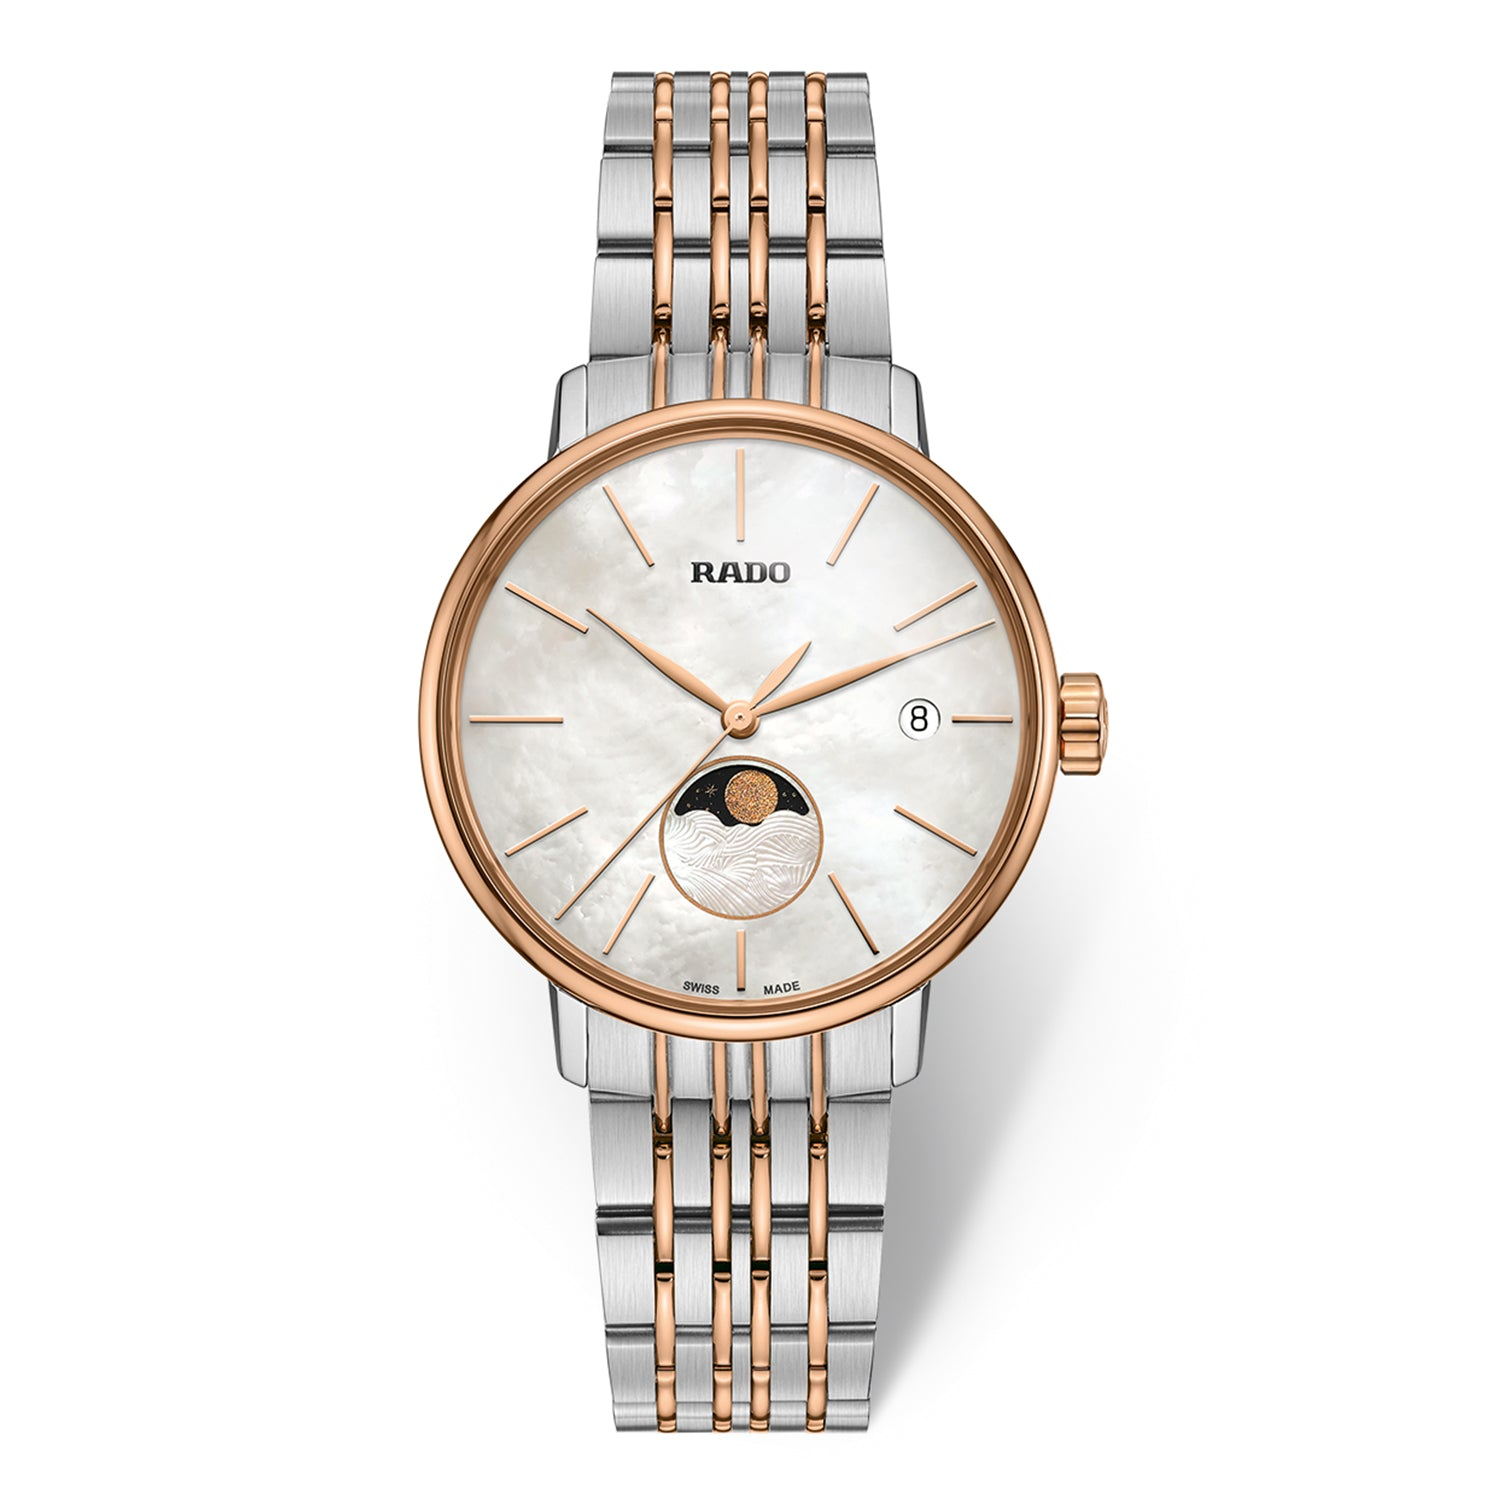 Rado Coupole Classic S watch with 9-Link Stainless steel bracelet, Mother of Pearl dial with Moonphase